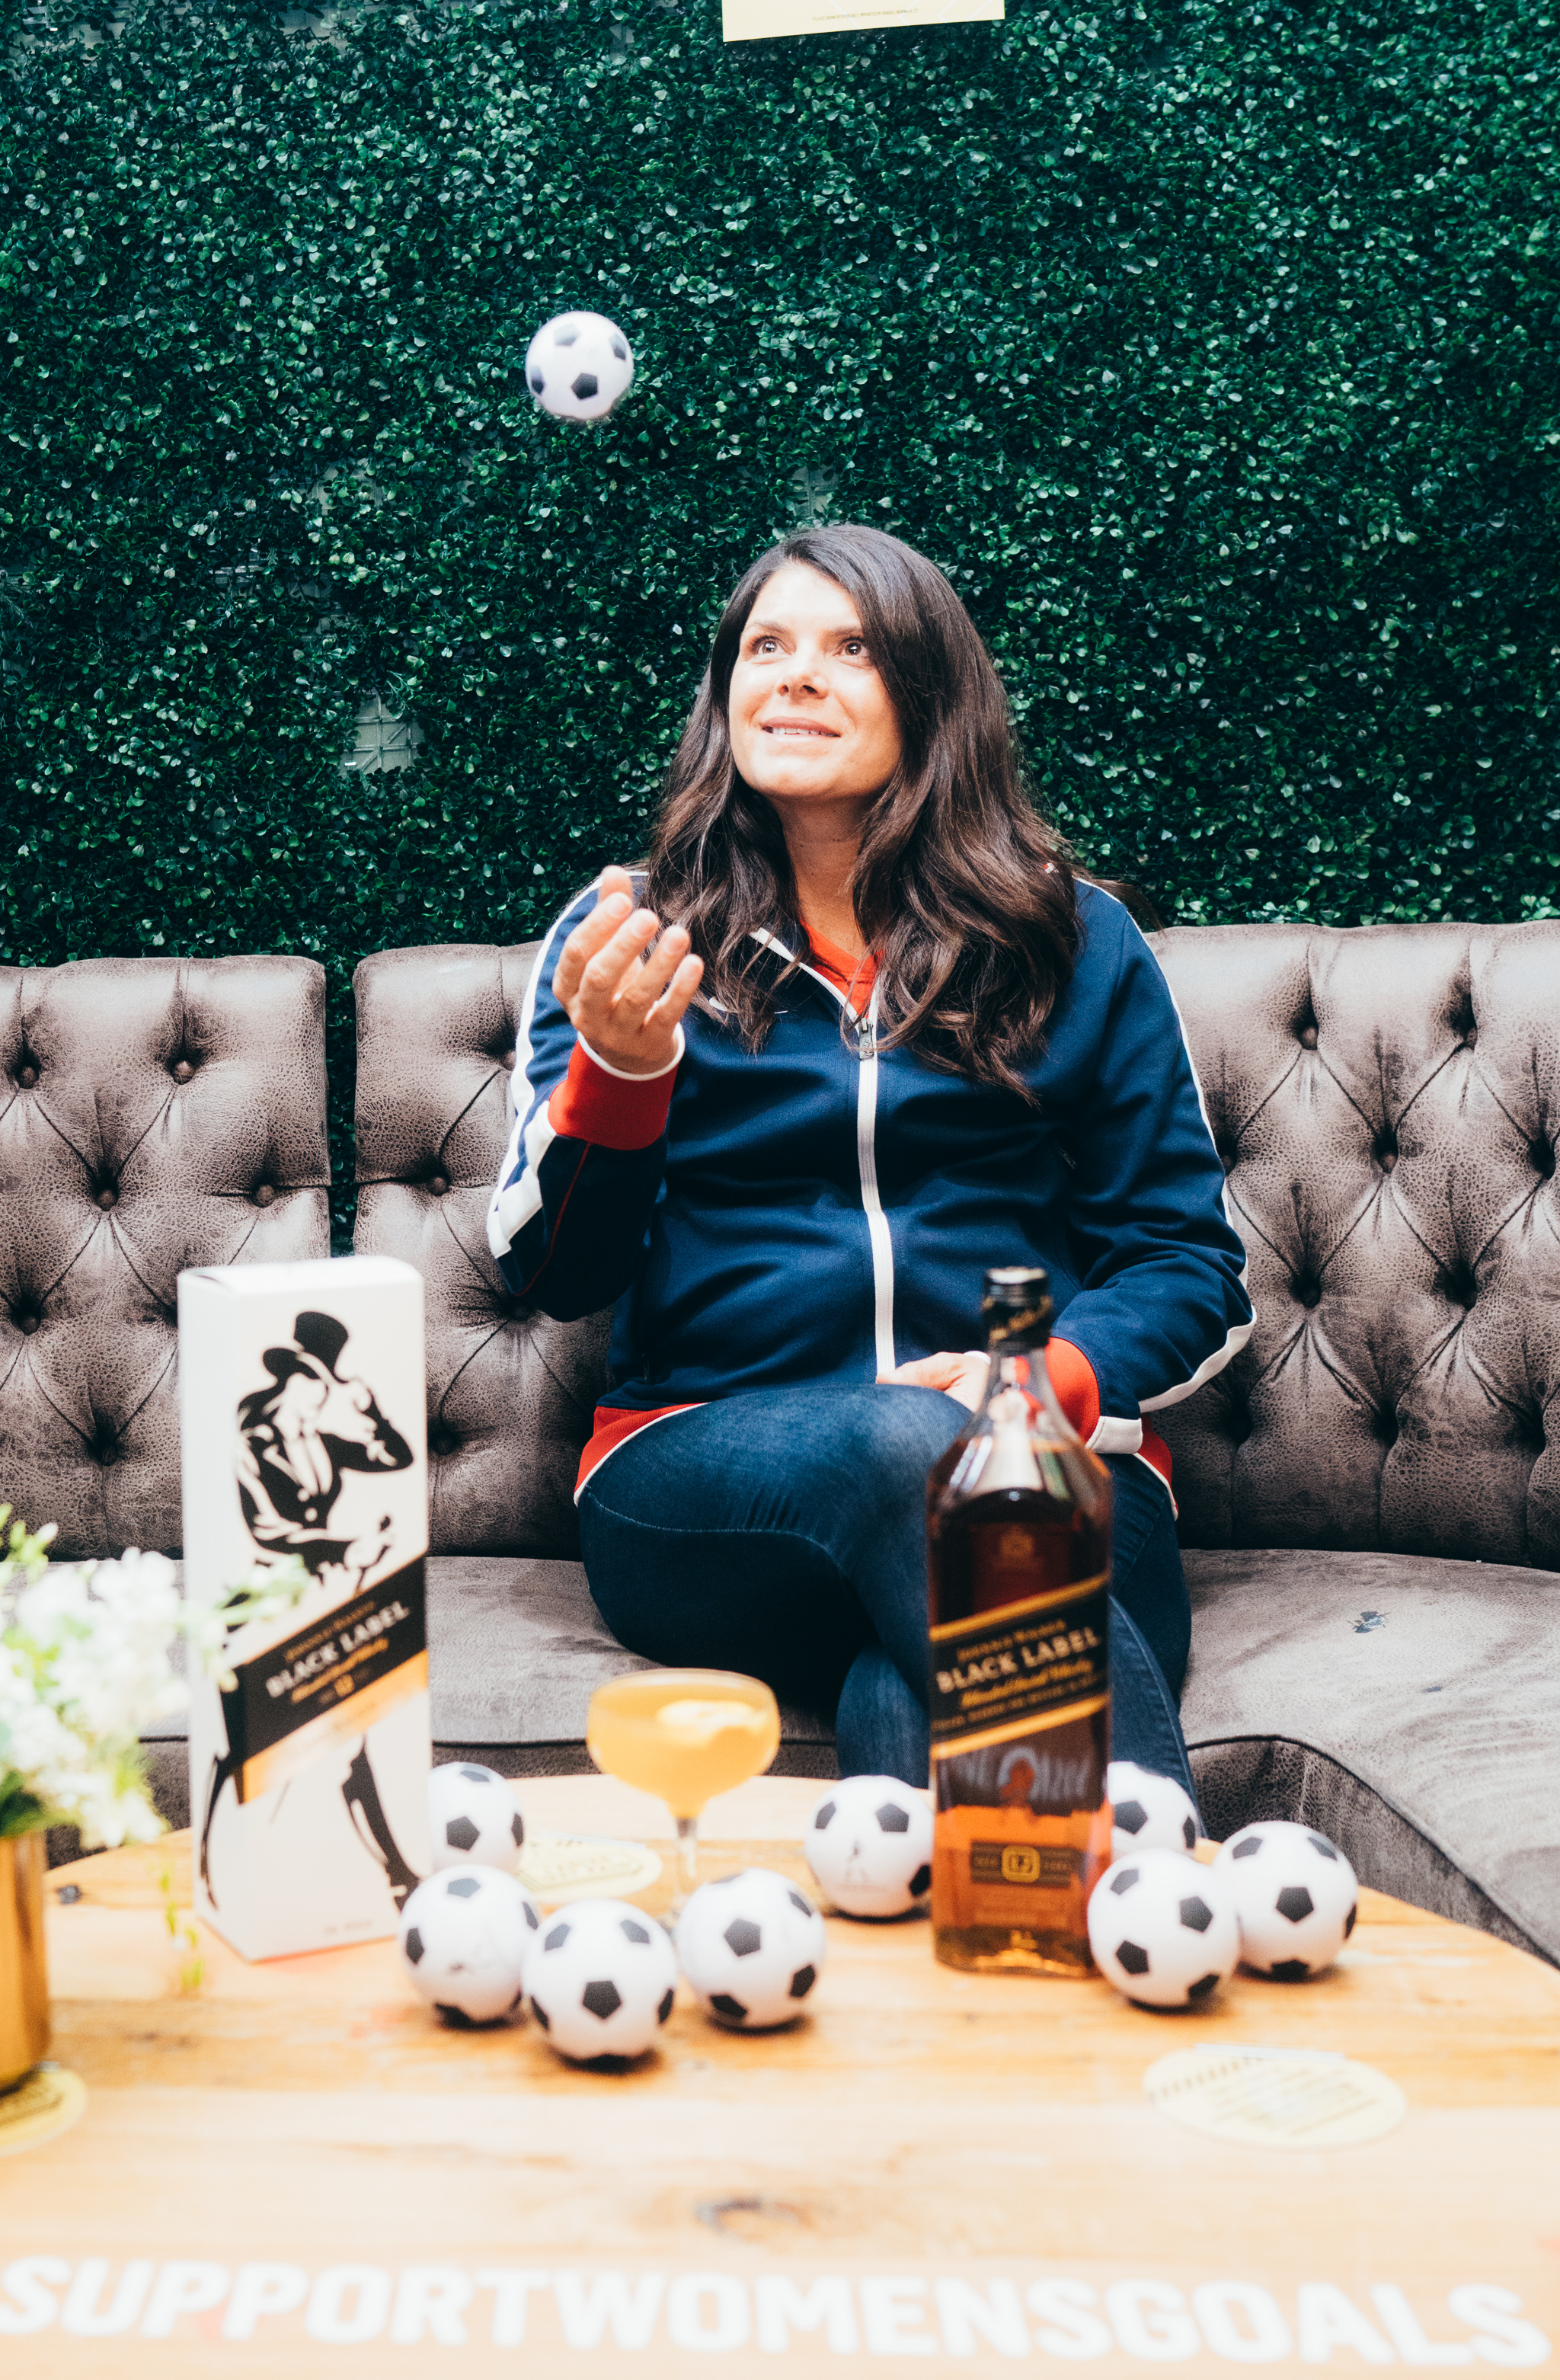 Mia Hamm at the Jane Walker by Johnnie Walker Equalizer Watch Party in NYC supporting equal pay.